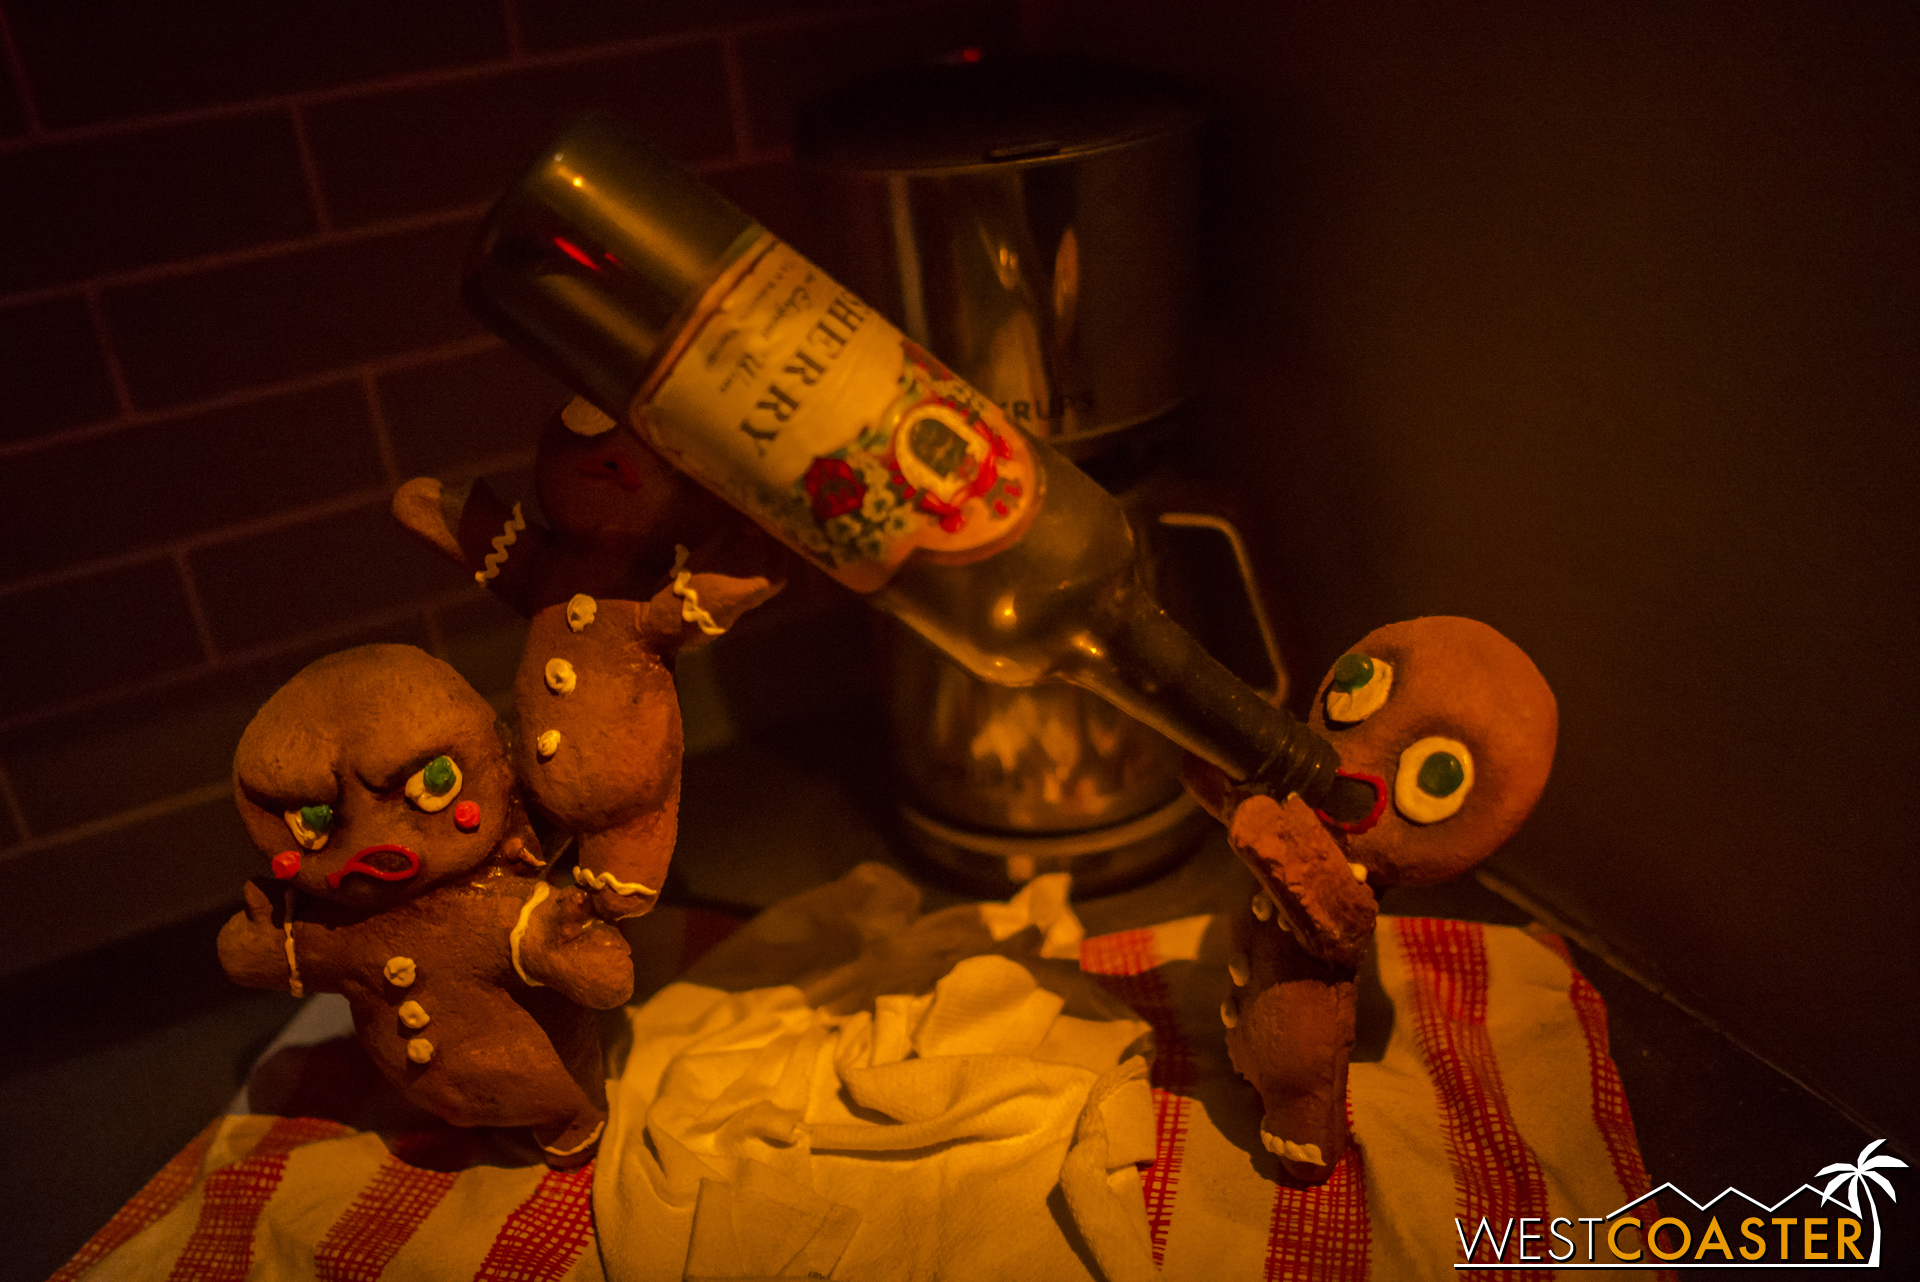 This was probably my favorite detail of the night.  Alcholic possessed gingerbread men? What could go wrong?